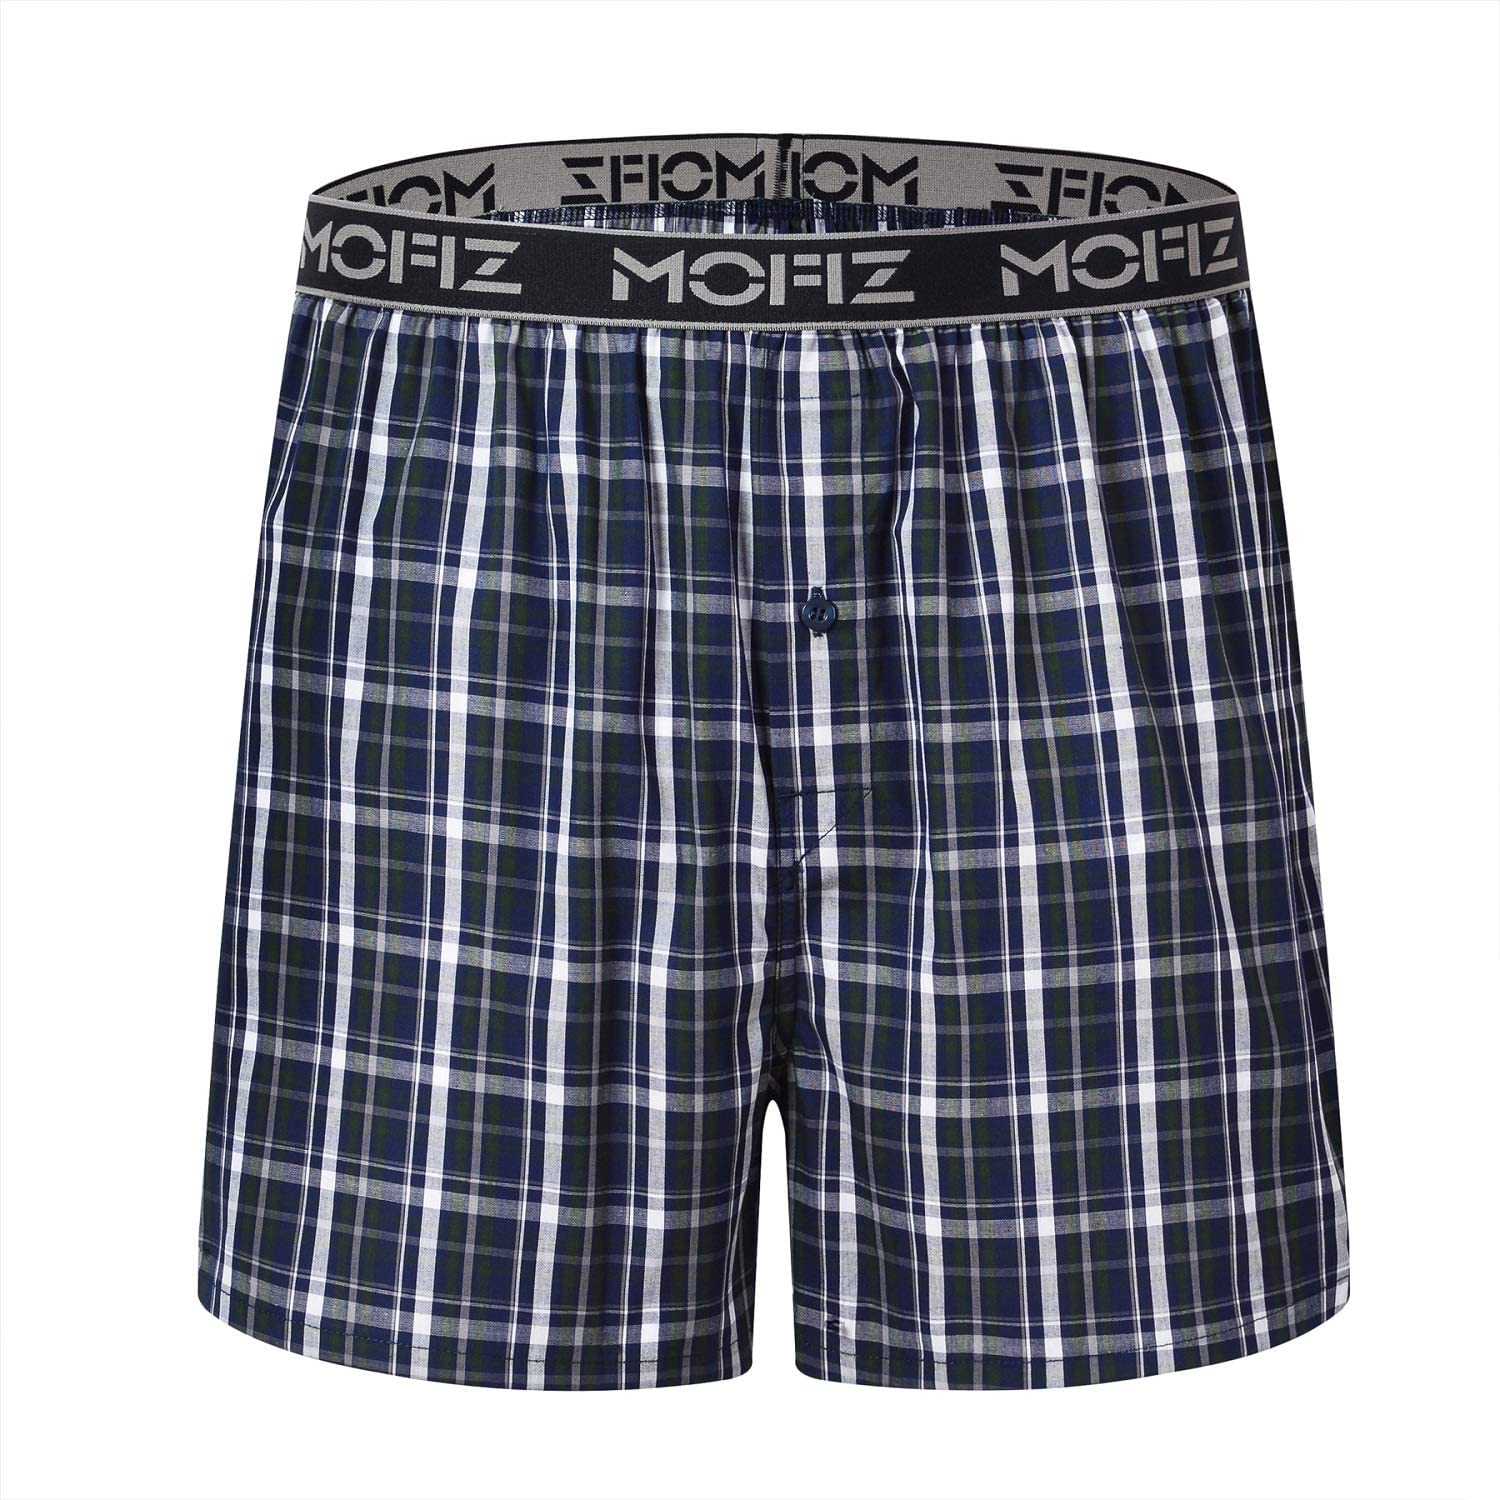 JINSHI Mens Boxer Shorts Underwear Boxer Cotton Plaid Button Fly Sleep Pajama Shorts 3-Pack